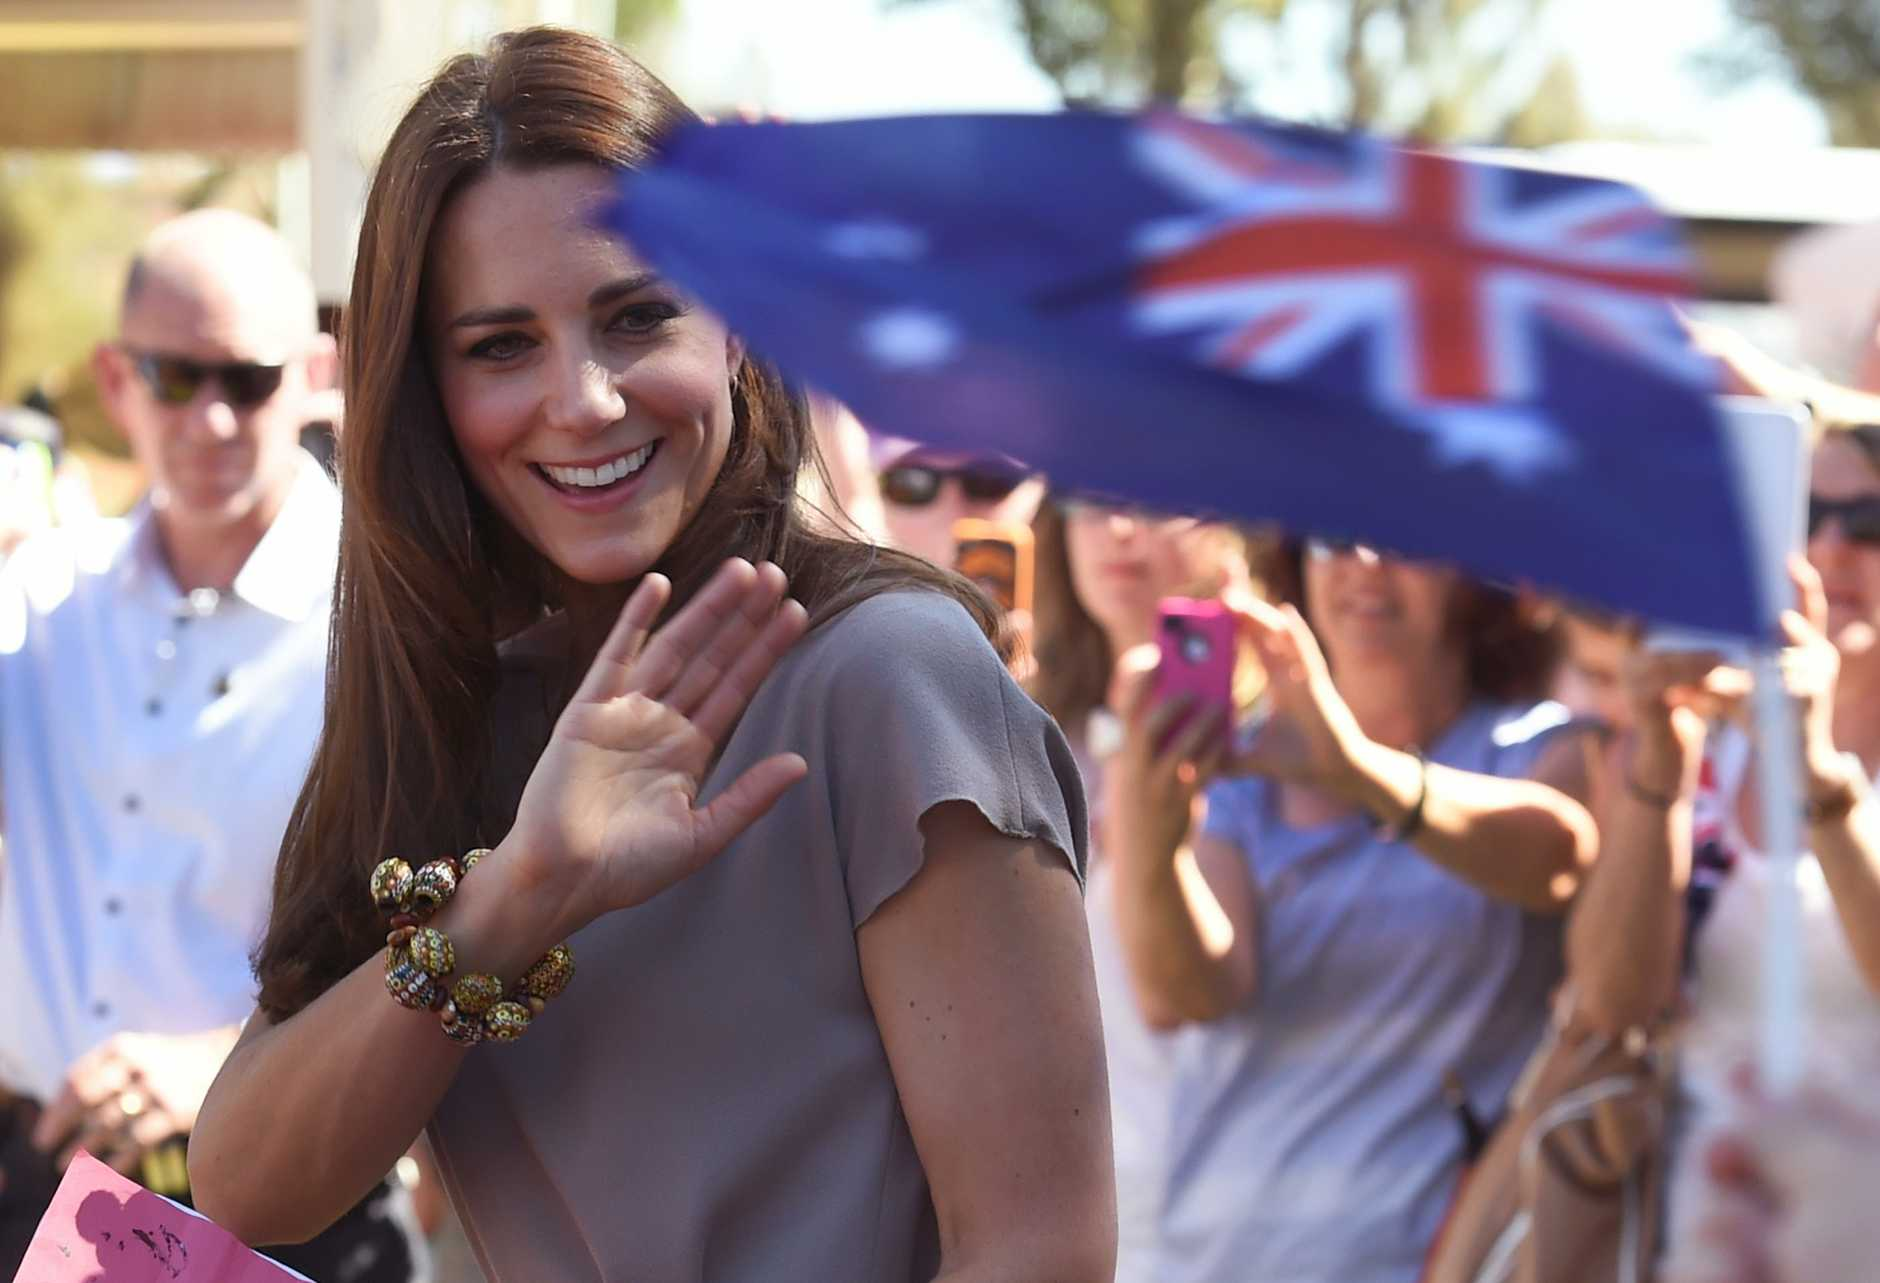 The Duchess of Cambridge, Catherine (L) waves to school children during a visit to the National Indigenous Training Academy at Yulara in the Northern Territory on Tuesday, April 22, 2014. Prince William, his wife Kate and their son Prince George are on a three-week tour of New Zealand and Australia